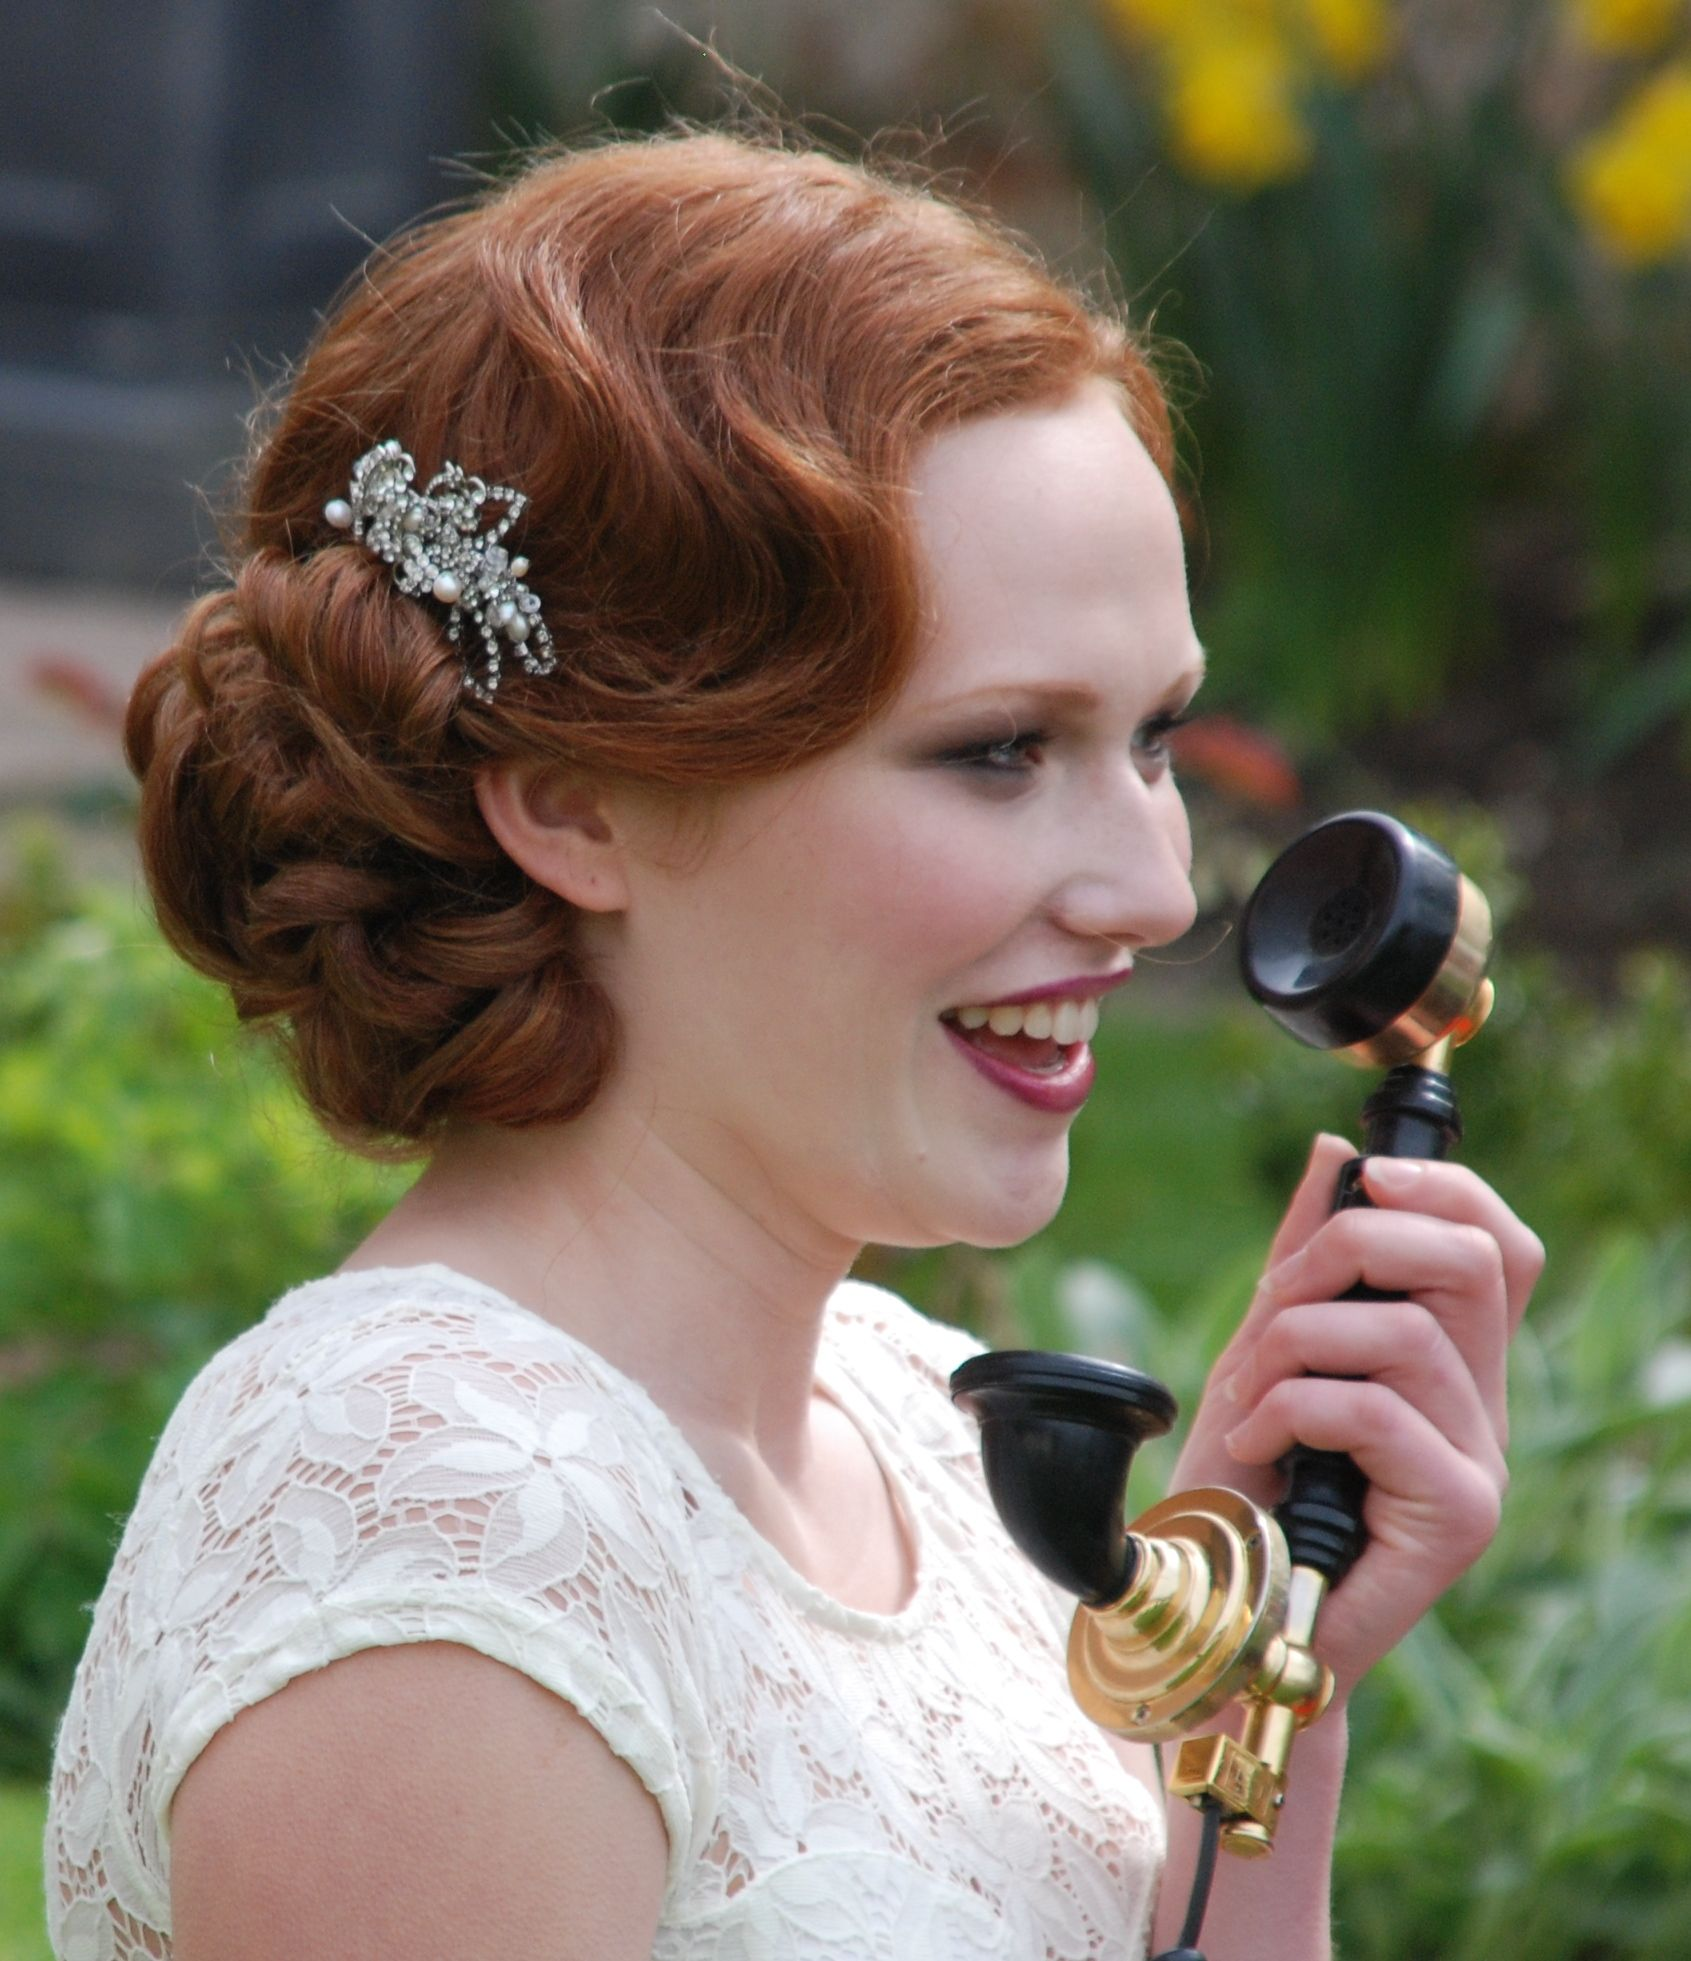 The Great Gatsby Hair Trend will continue into SS14 ...